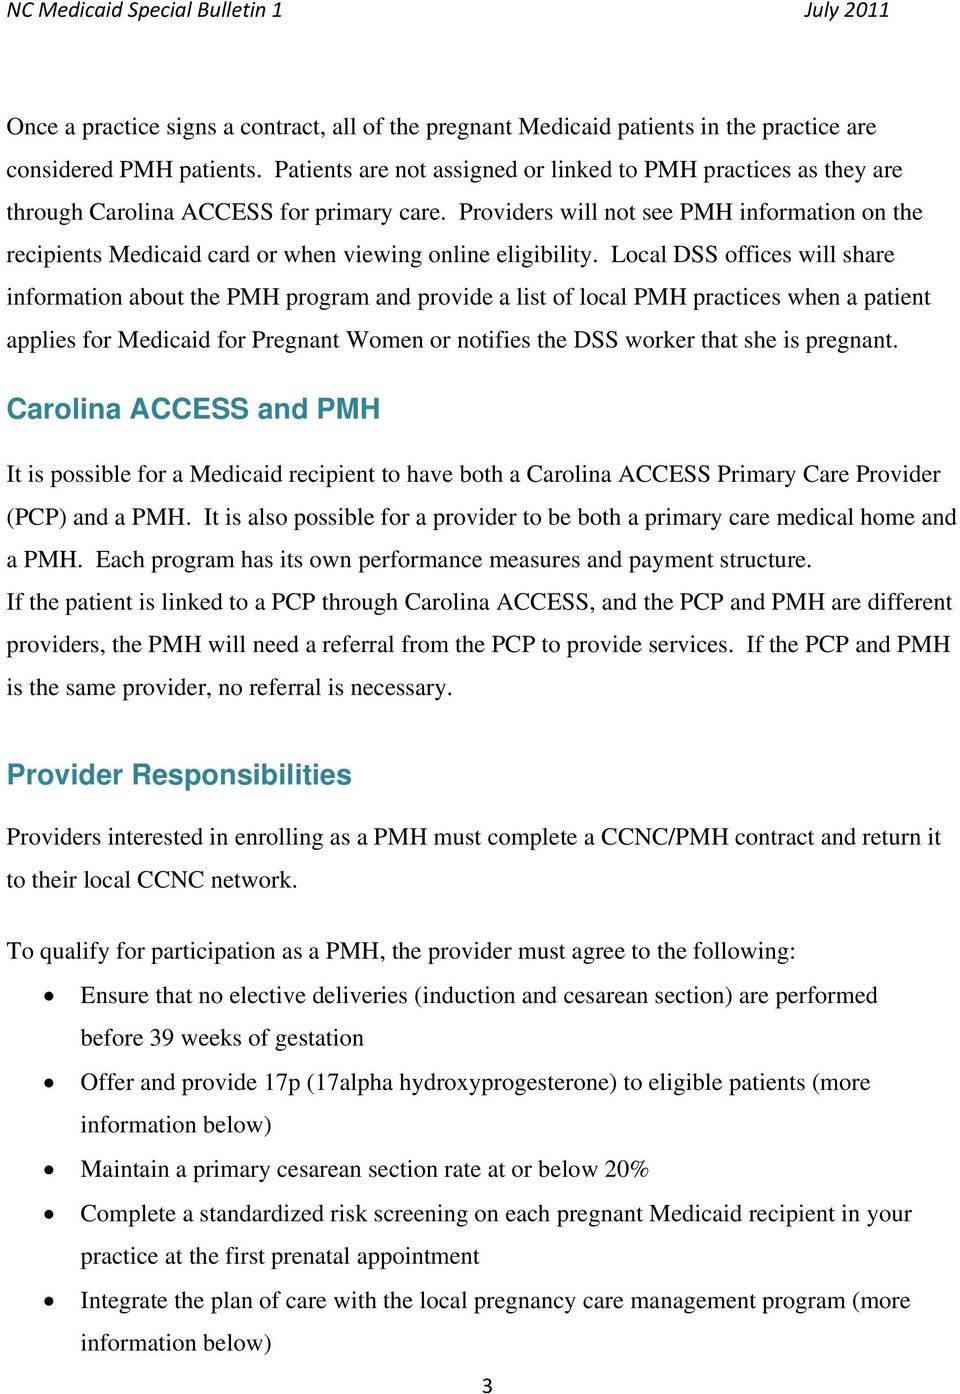 Providers will not see PMH information on the recipients Medicaid card or when viewing online eligibility.